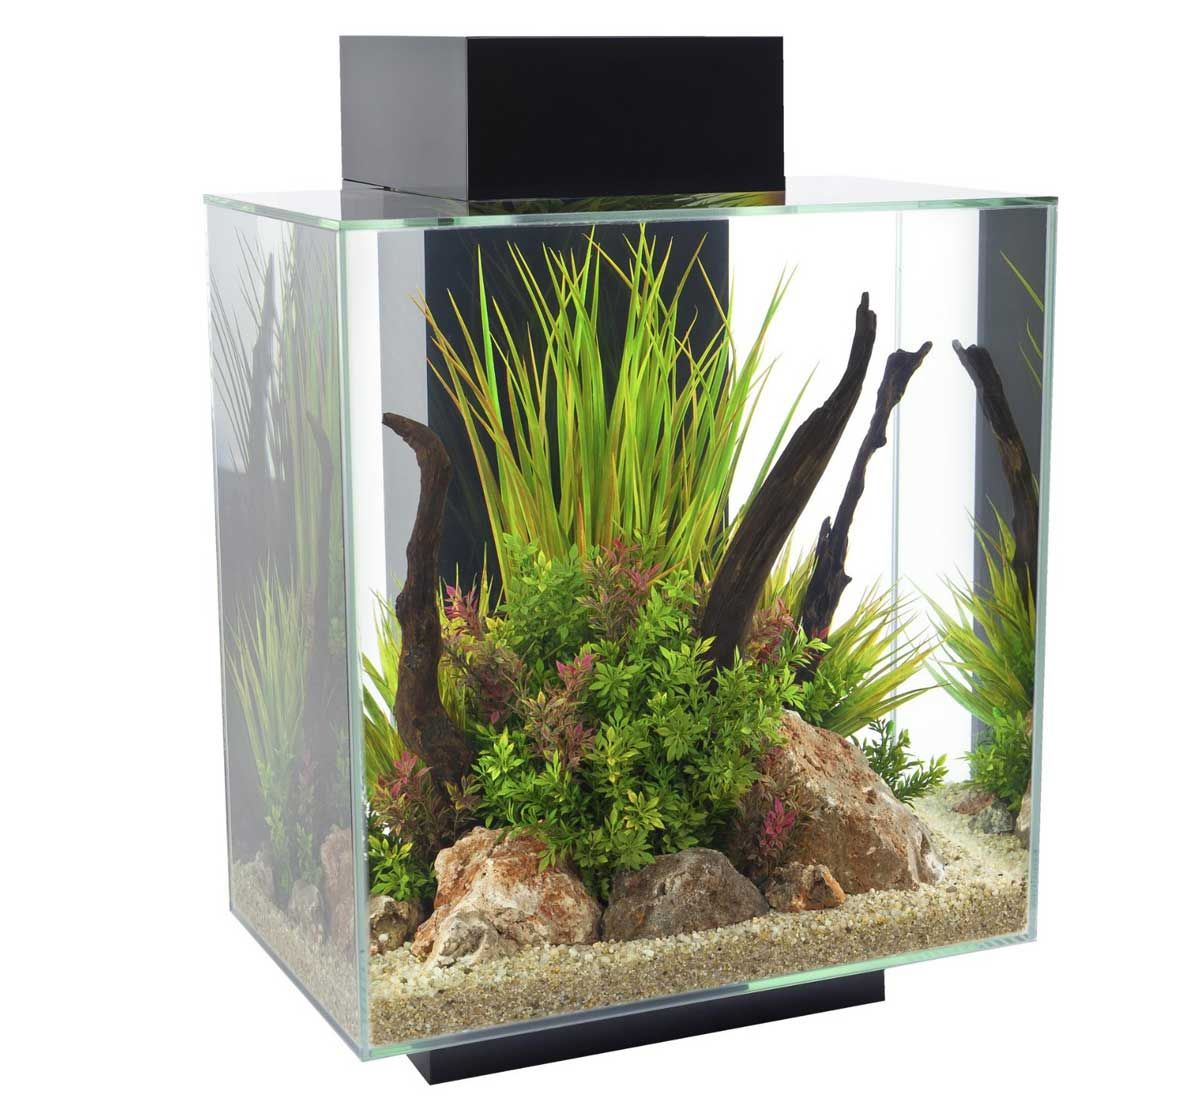 Fish for aquarium online - Buy Online Fluval Edge Aquarium Set Led Black 46ltr At Online Fish Shop India Http